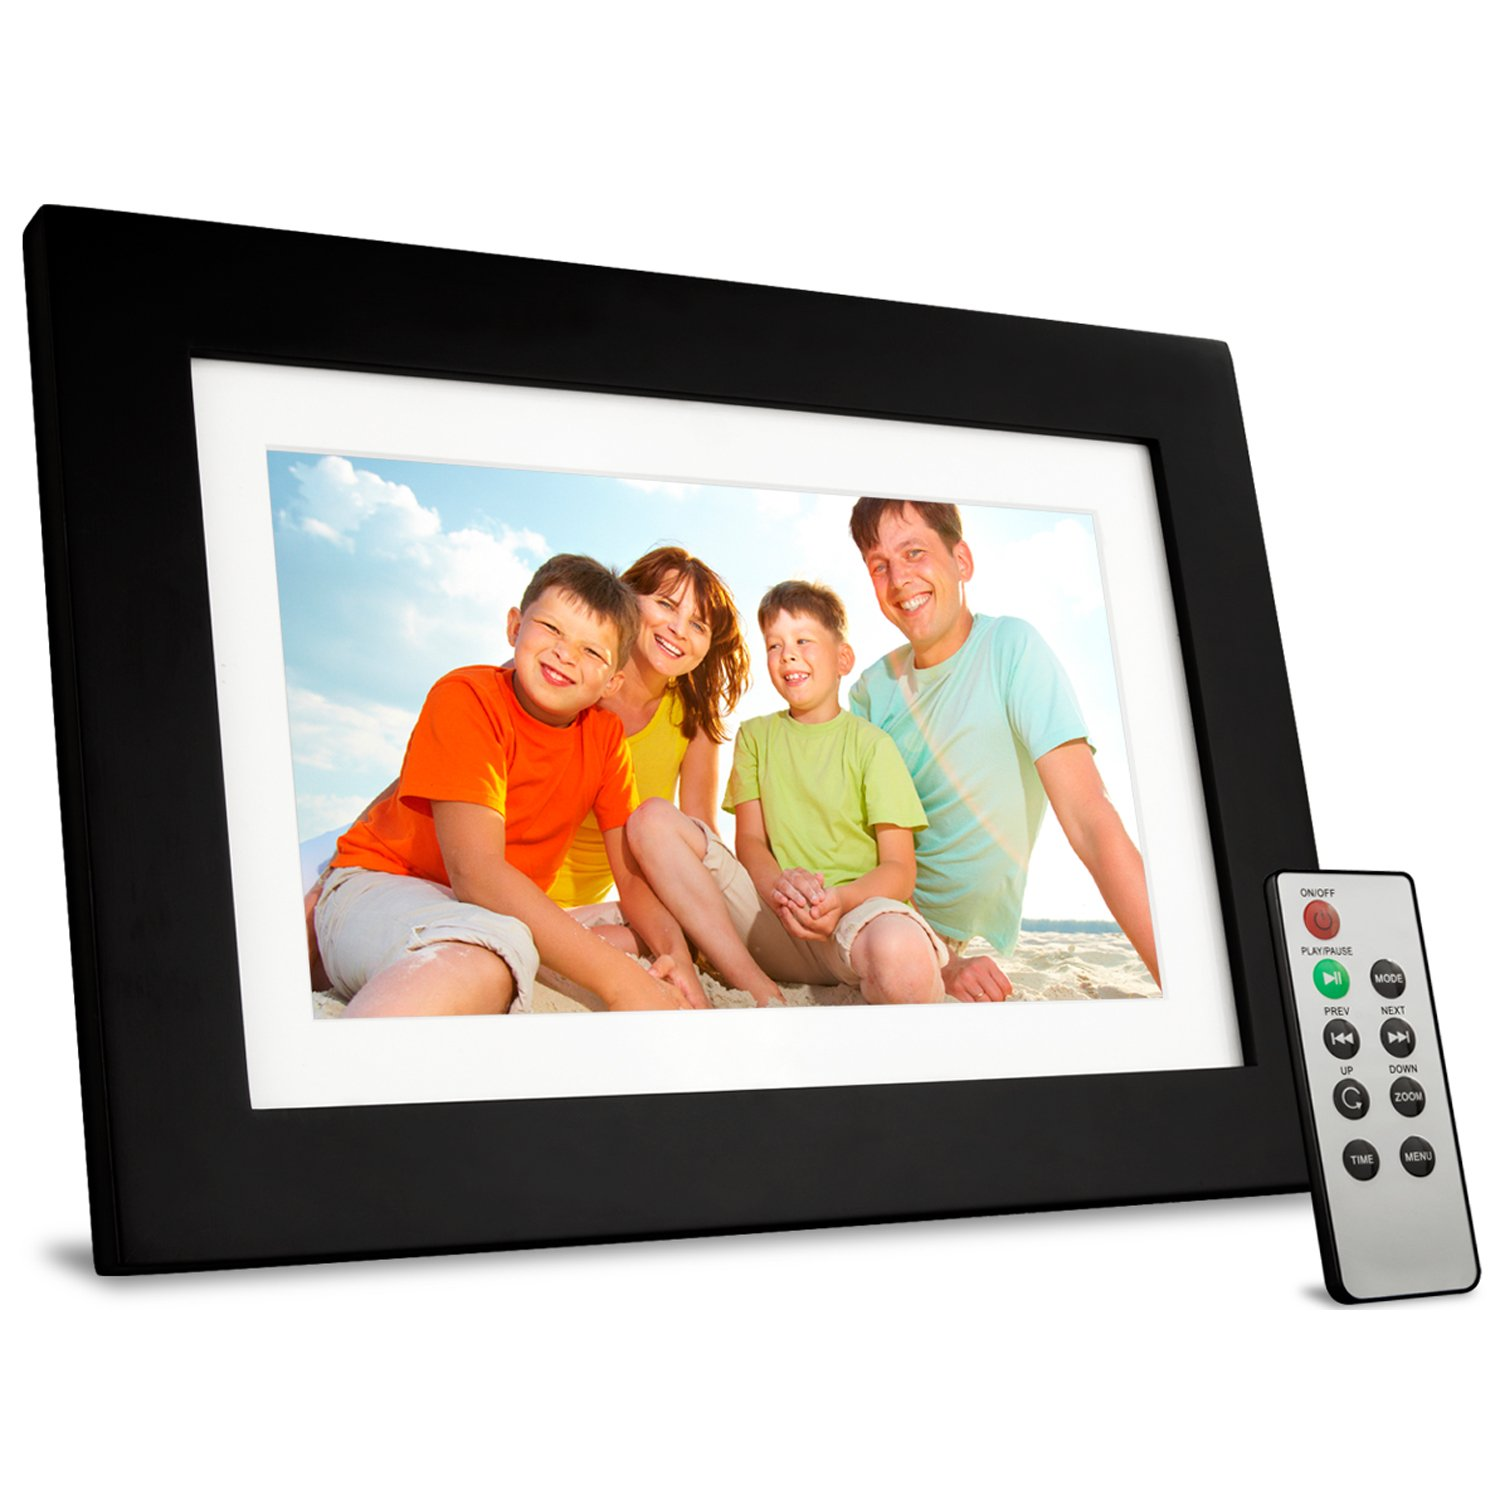 viewsonic vfd1028w 11 101 inch digital photo frame features high resolution 1024x600 black amazonca camera photo - Electronic Picture Frames